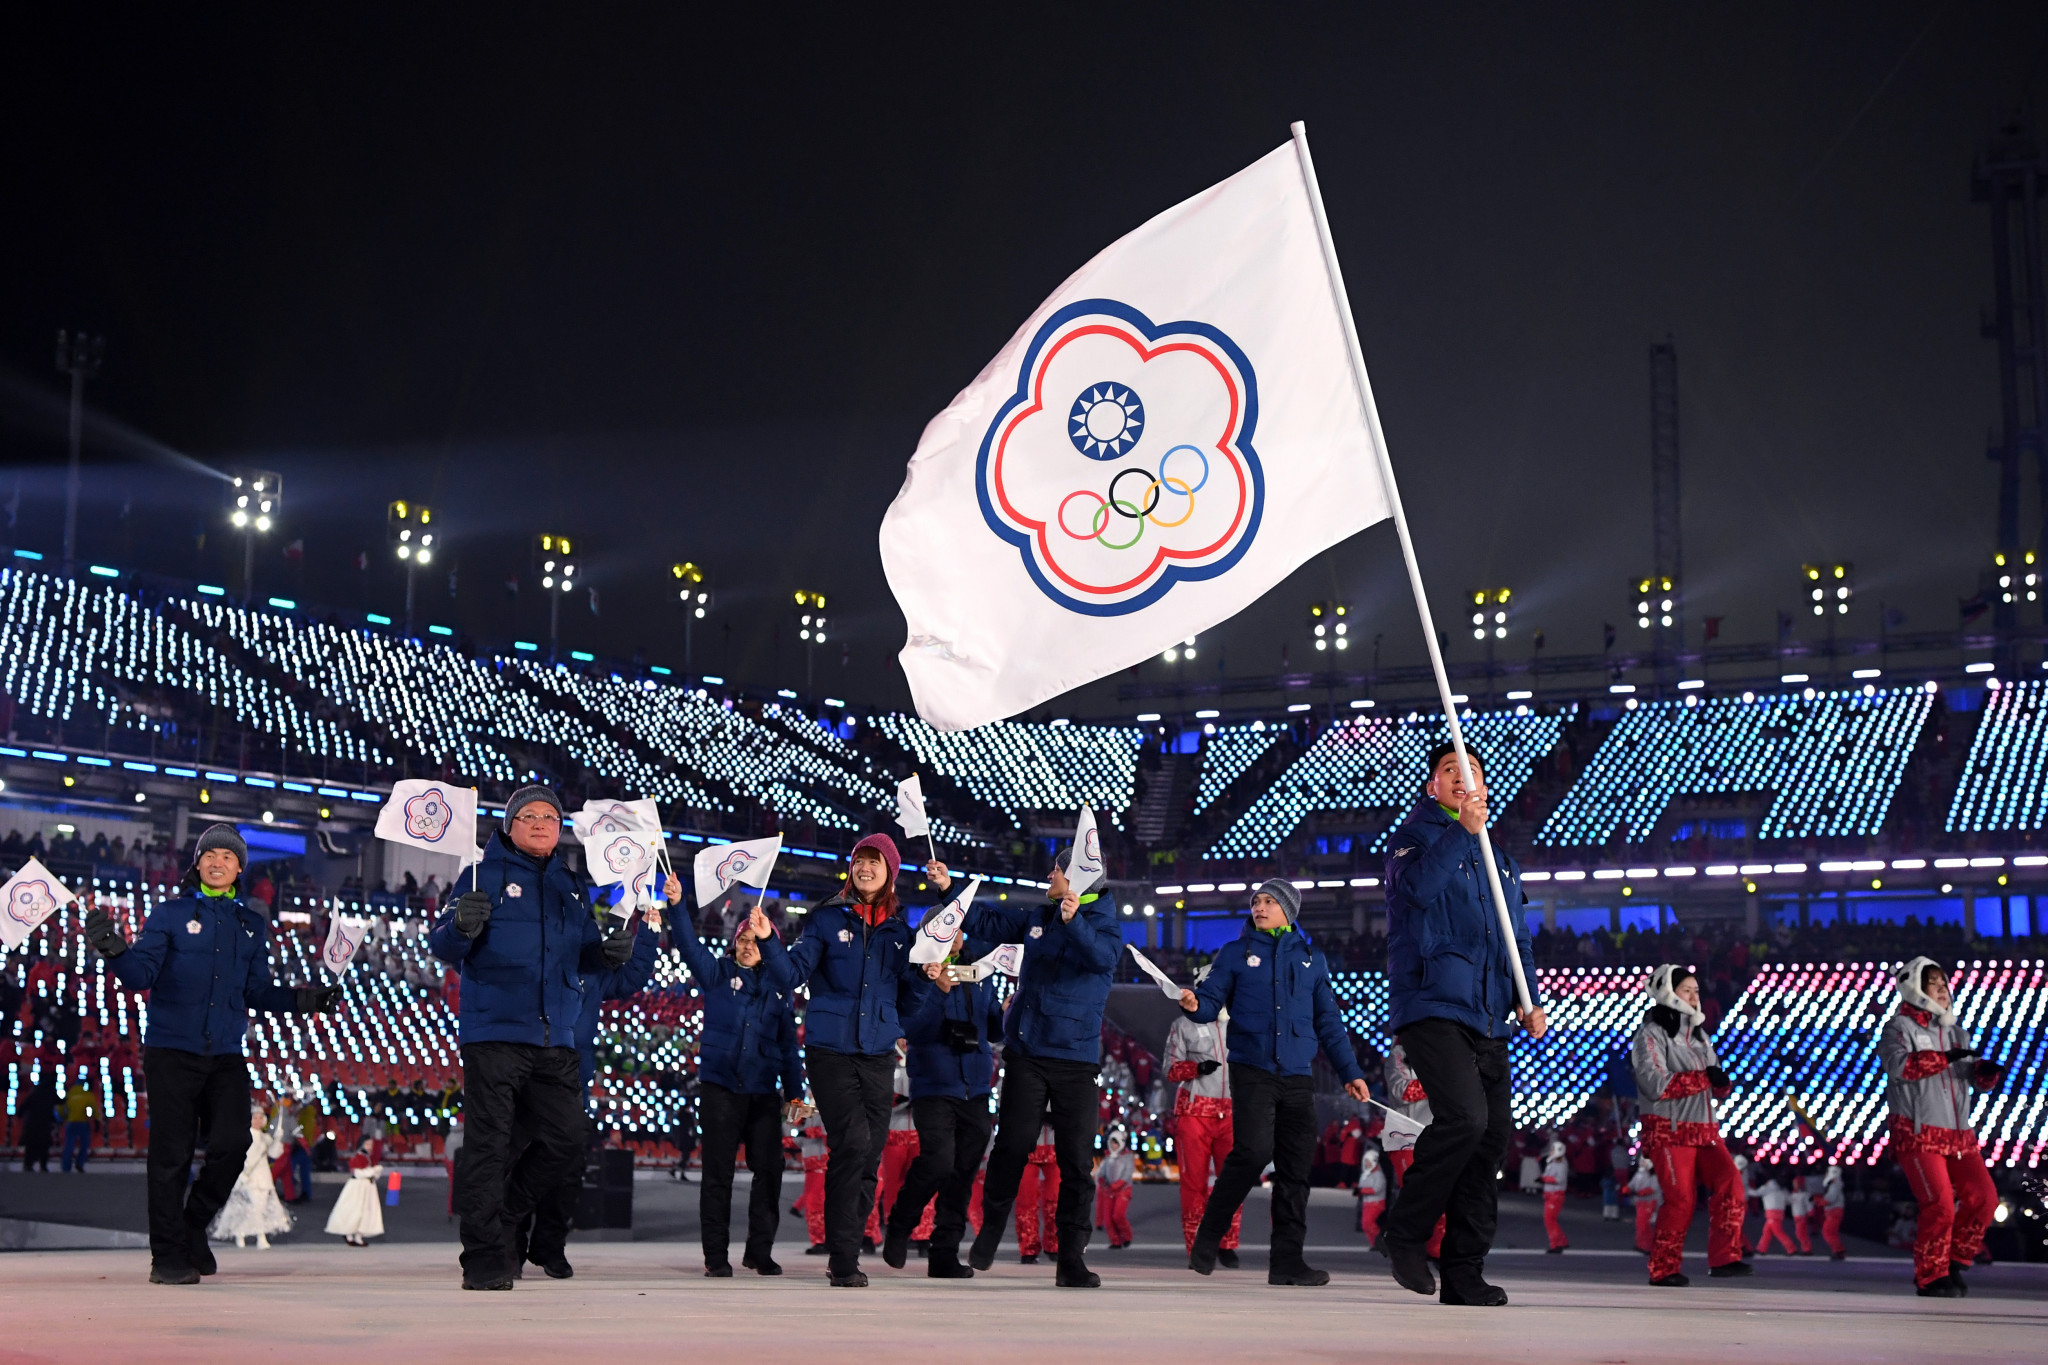 Athletes from Chinese Taipei cannot compete under the Taiwanese flag ©Getty Images